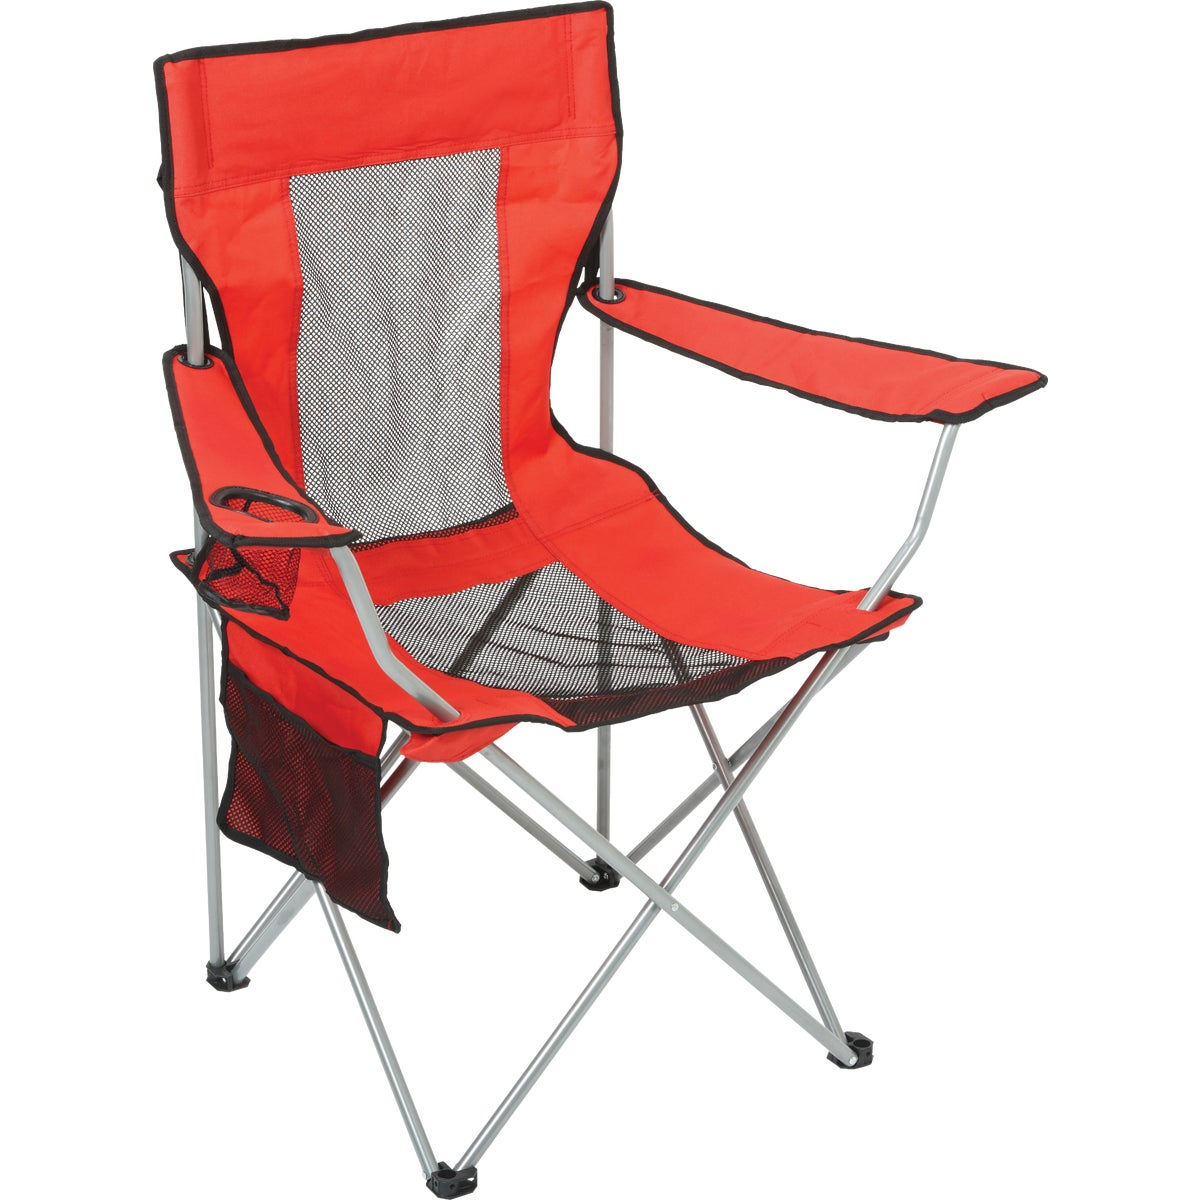 DELUXE MESH CHAIR - 149683 by Bravo Sports